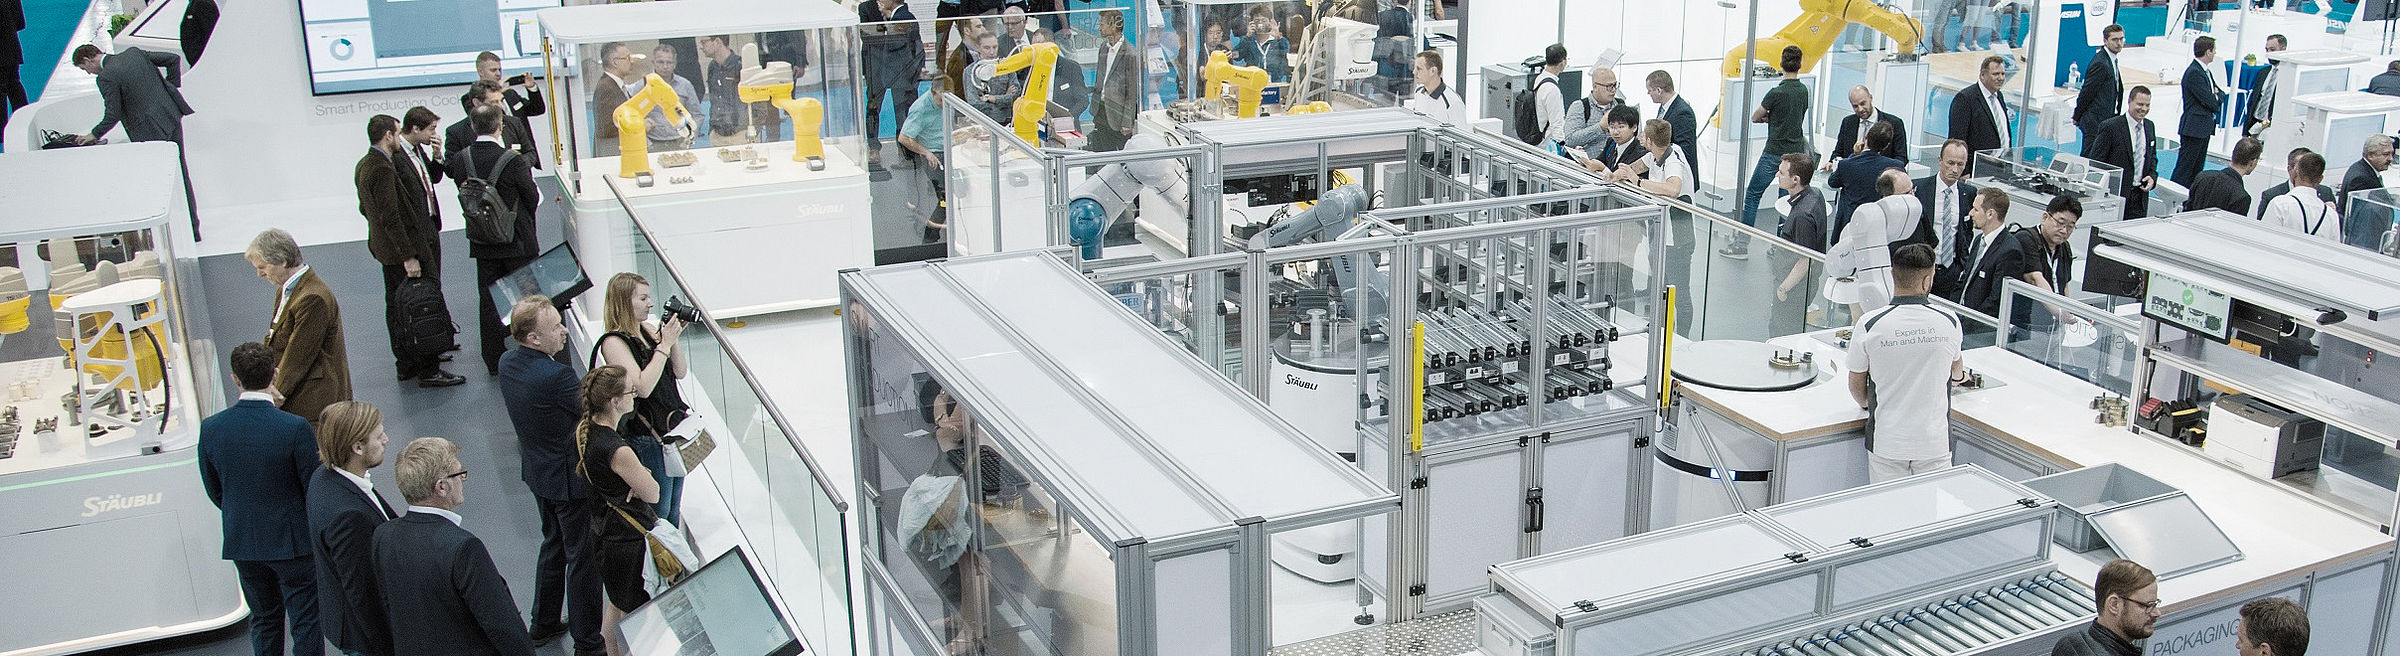 Smart production at Automatica 2018